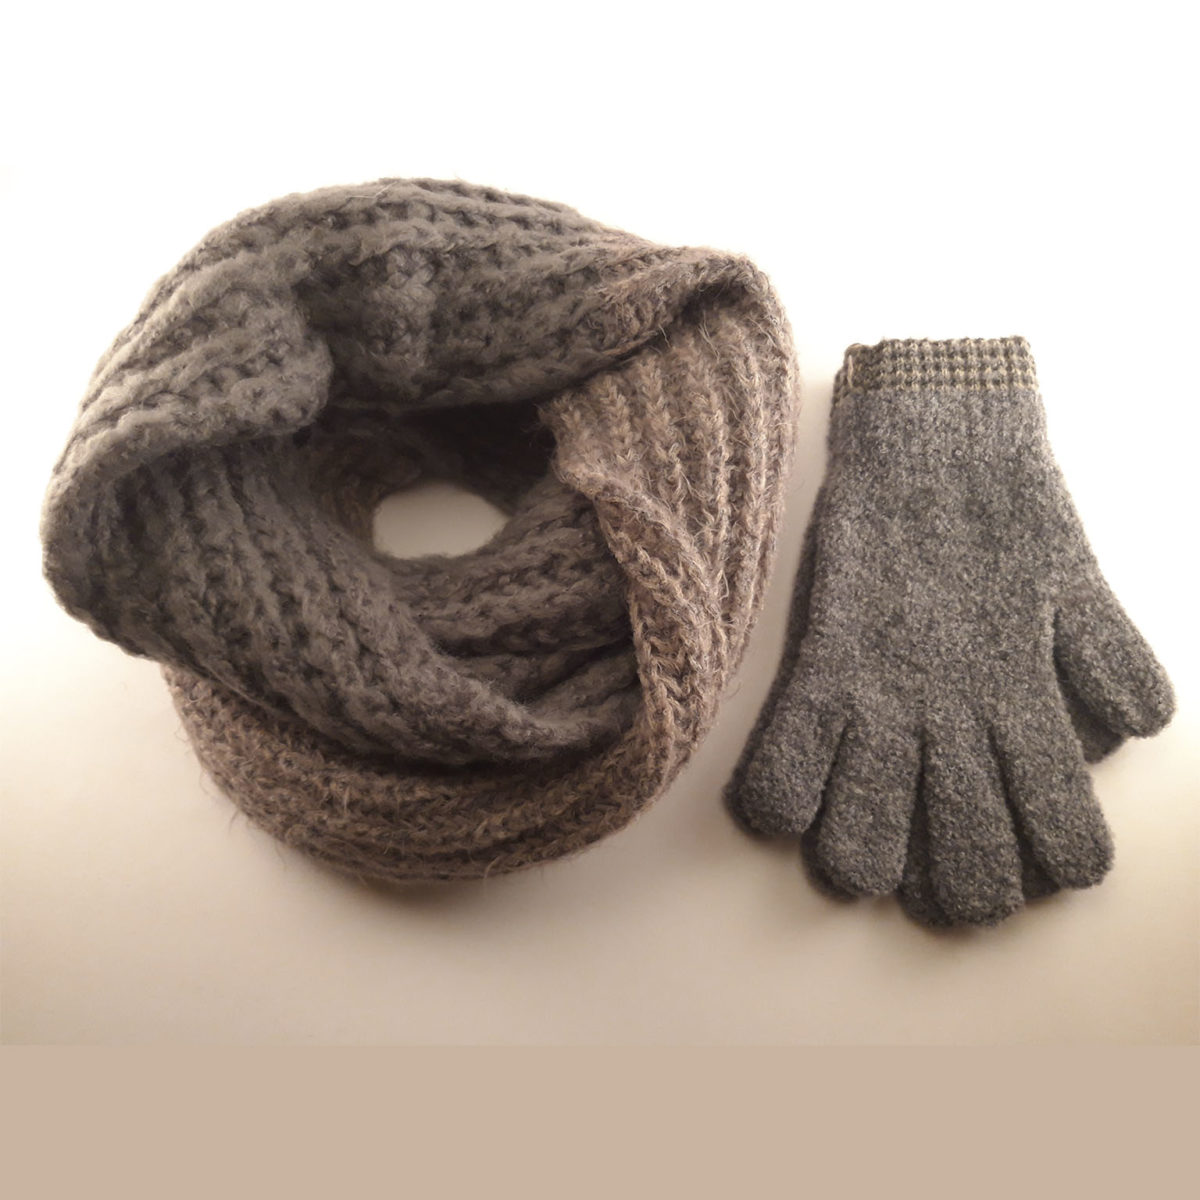 Collar And Wool Gloves In Gray And Beige Tones